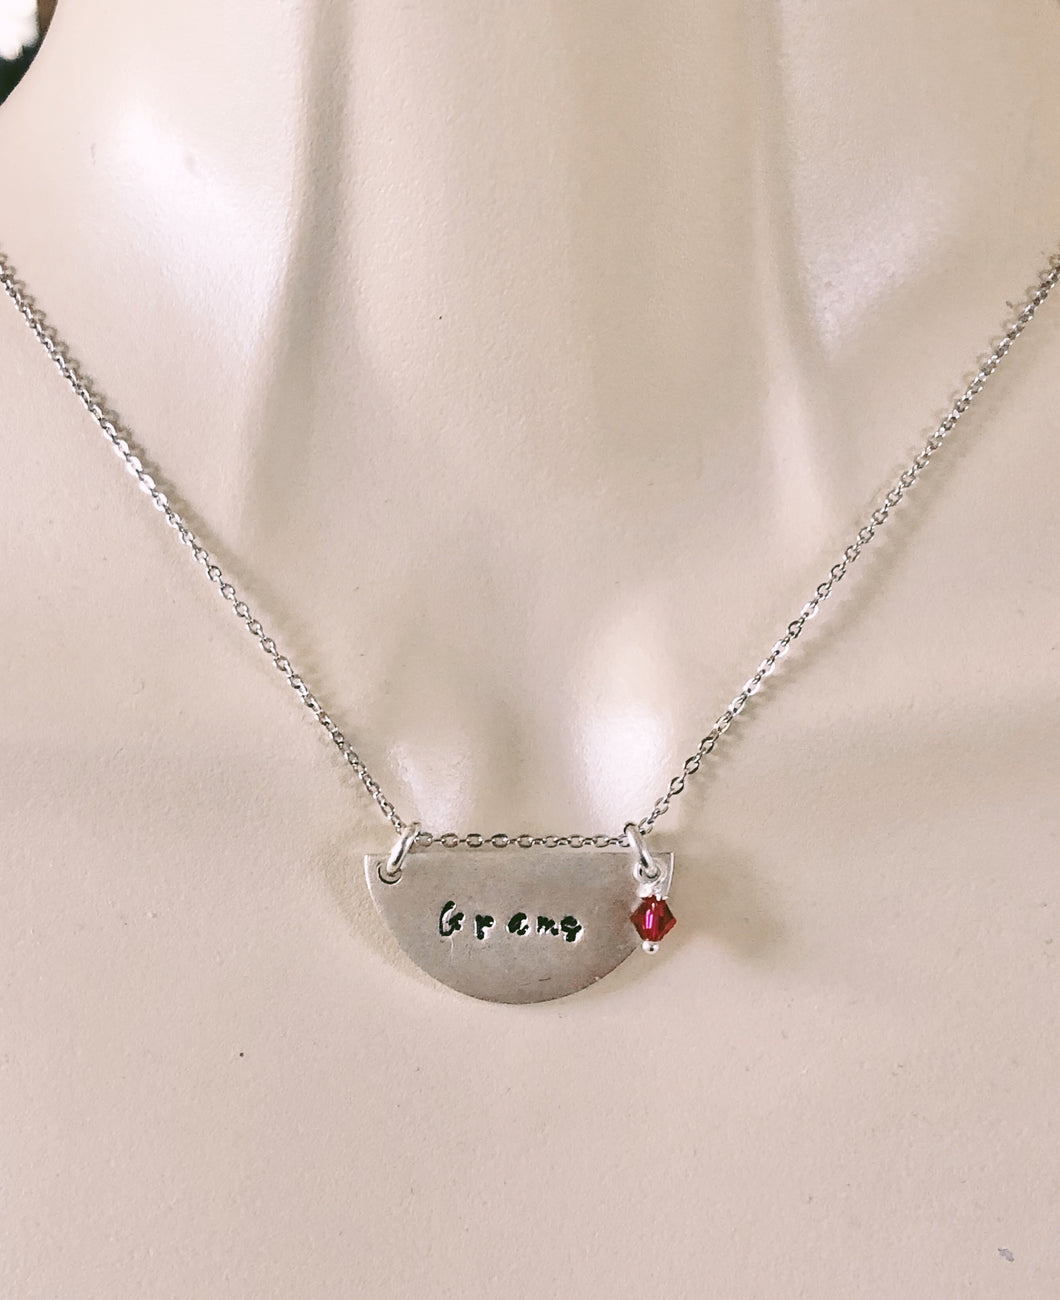 Half Circle Personalized Stamped Necklace